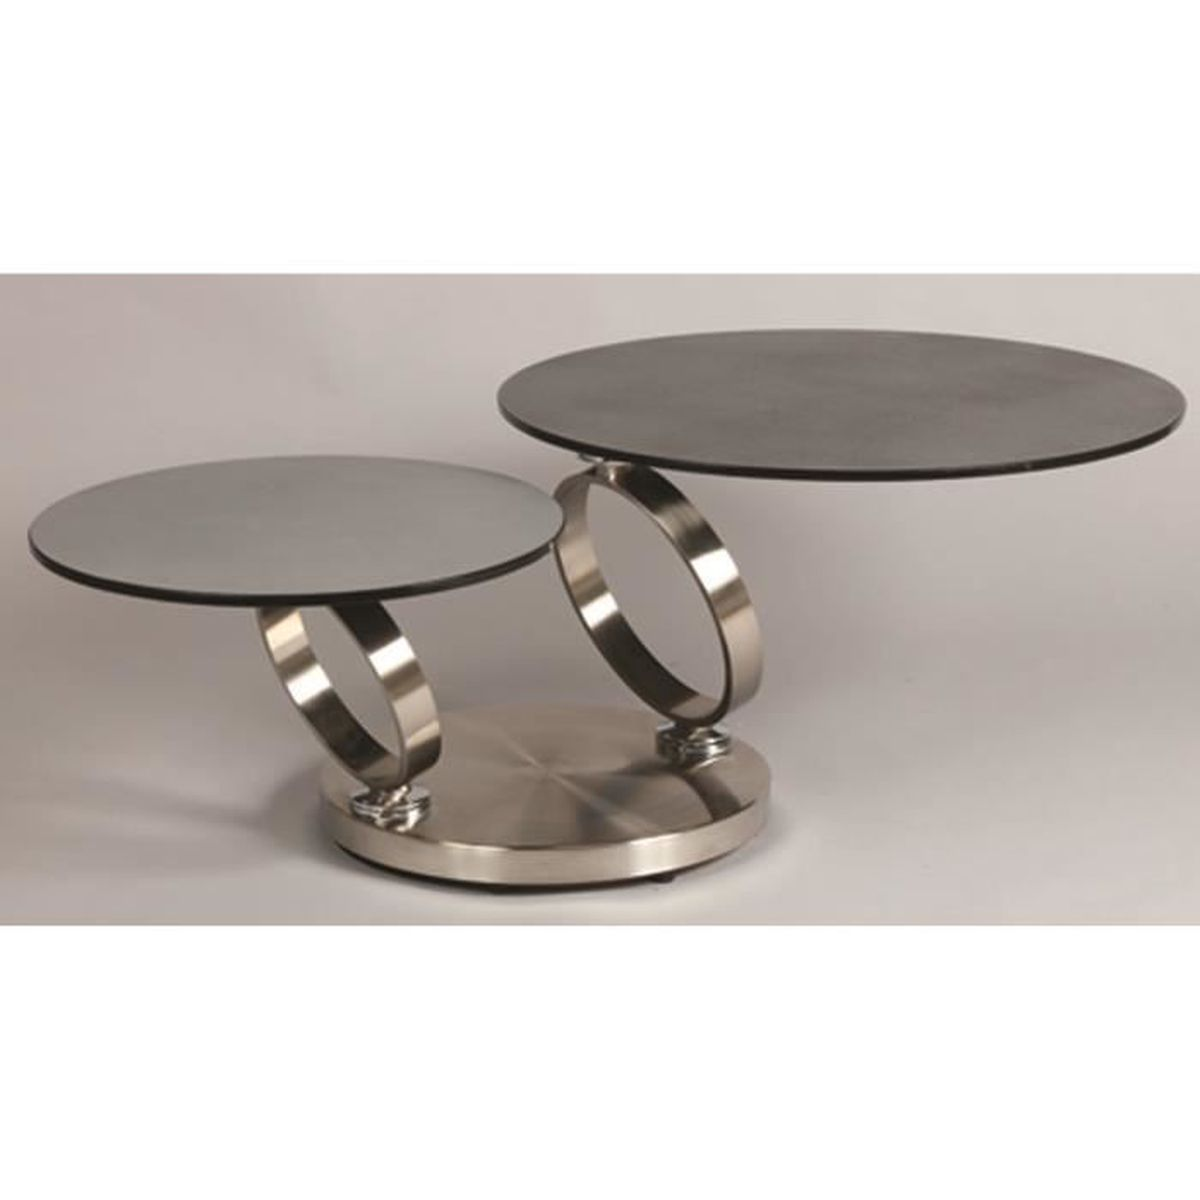 table basse avec 2 plateaux en verre tremp aspect. Black Bedroom Furniture Sets. Home Design Ideas